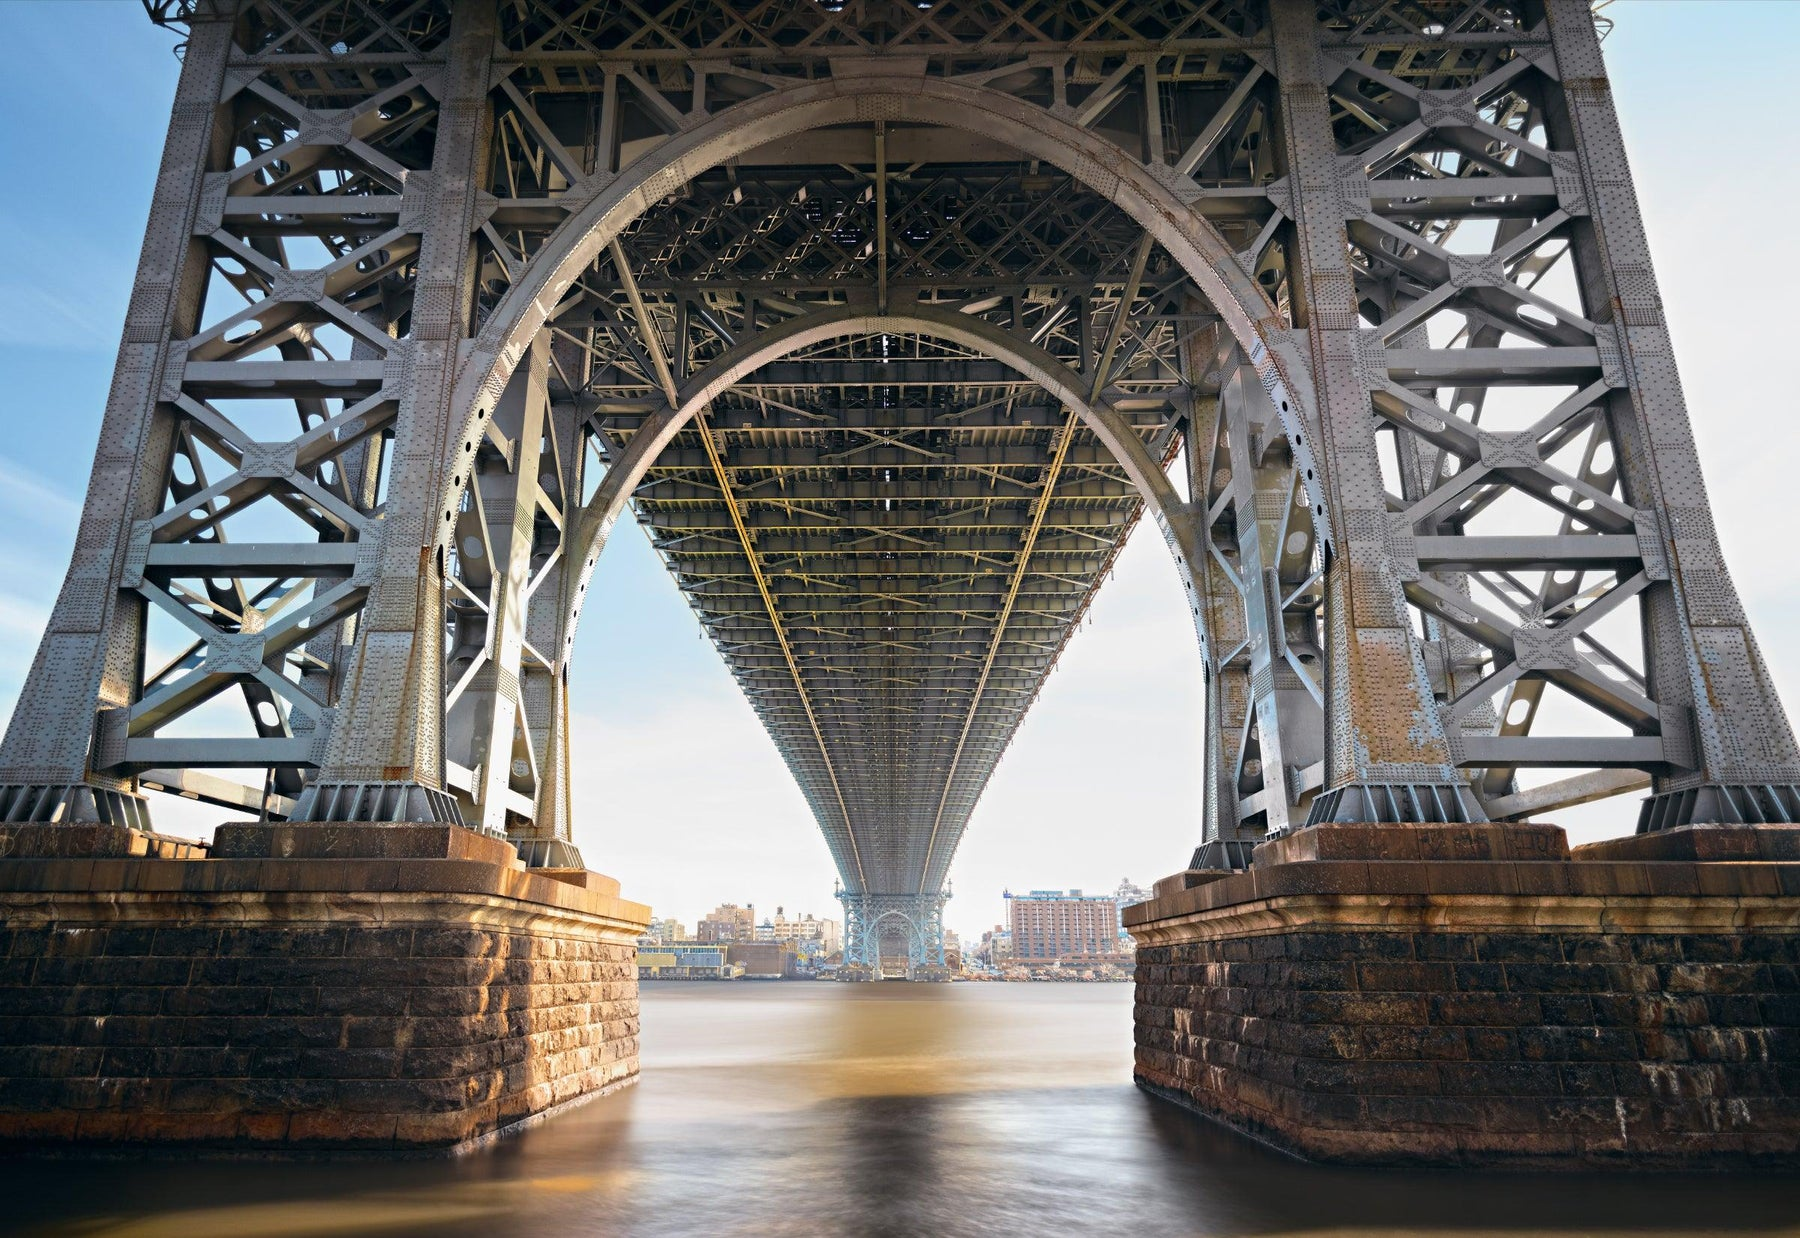 View from under the Williamsburg Bridge with the city of New York in the background